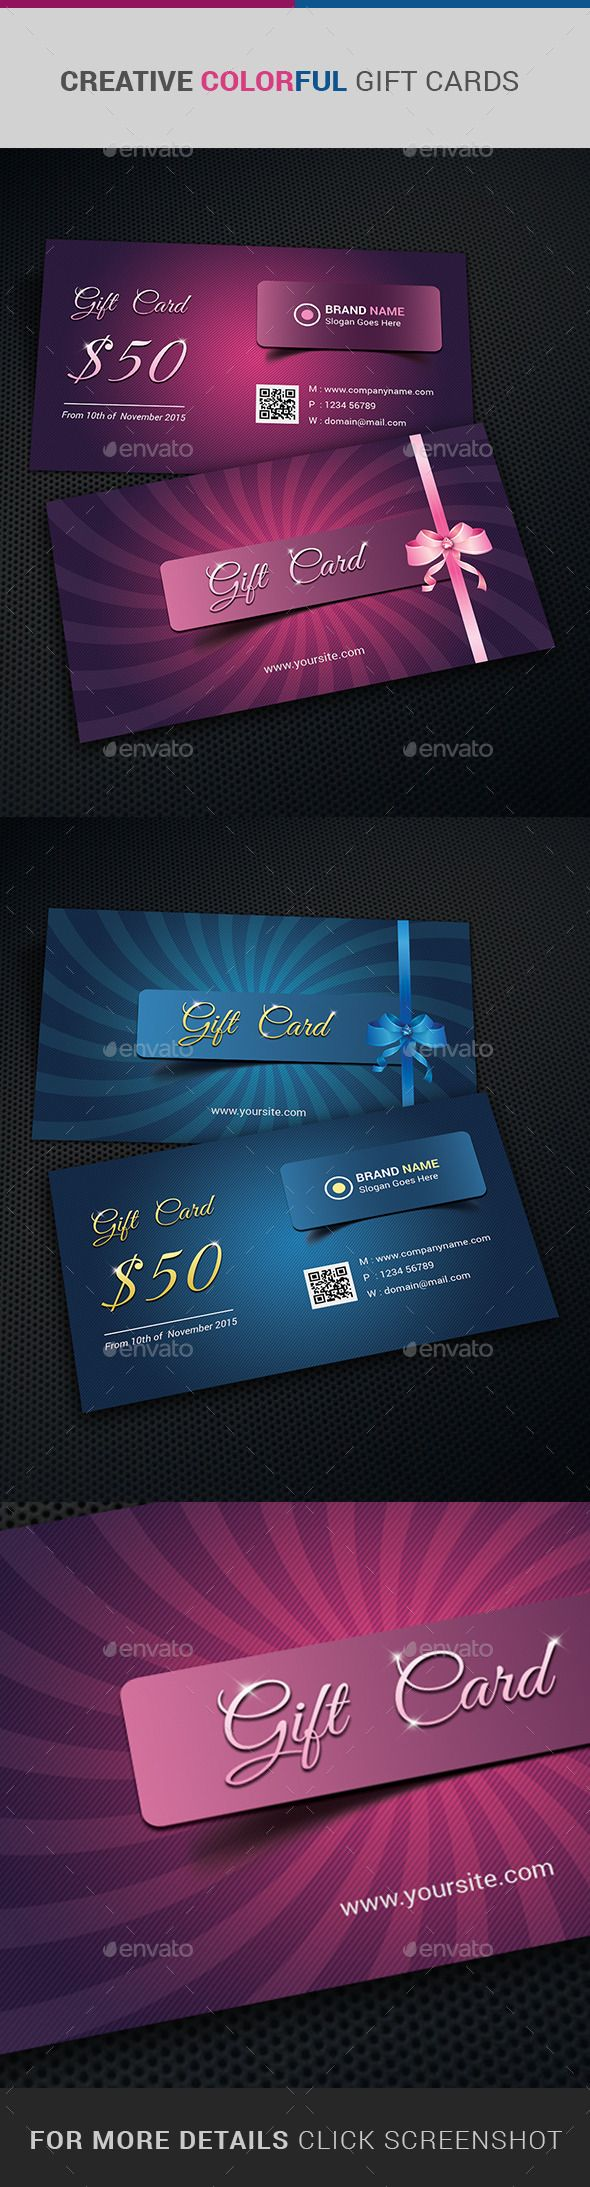 Gift Card Certificate Design-suitable for promoting any business, product or services. Company, retail store, super shop, super market or business, can offer this coupon/cashcard to contain or regain their existing customers. Download http://graphicriver.net/item/gift-card-certificate/10982238?ref=themedevisers